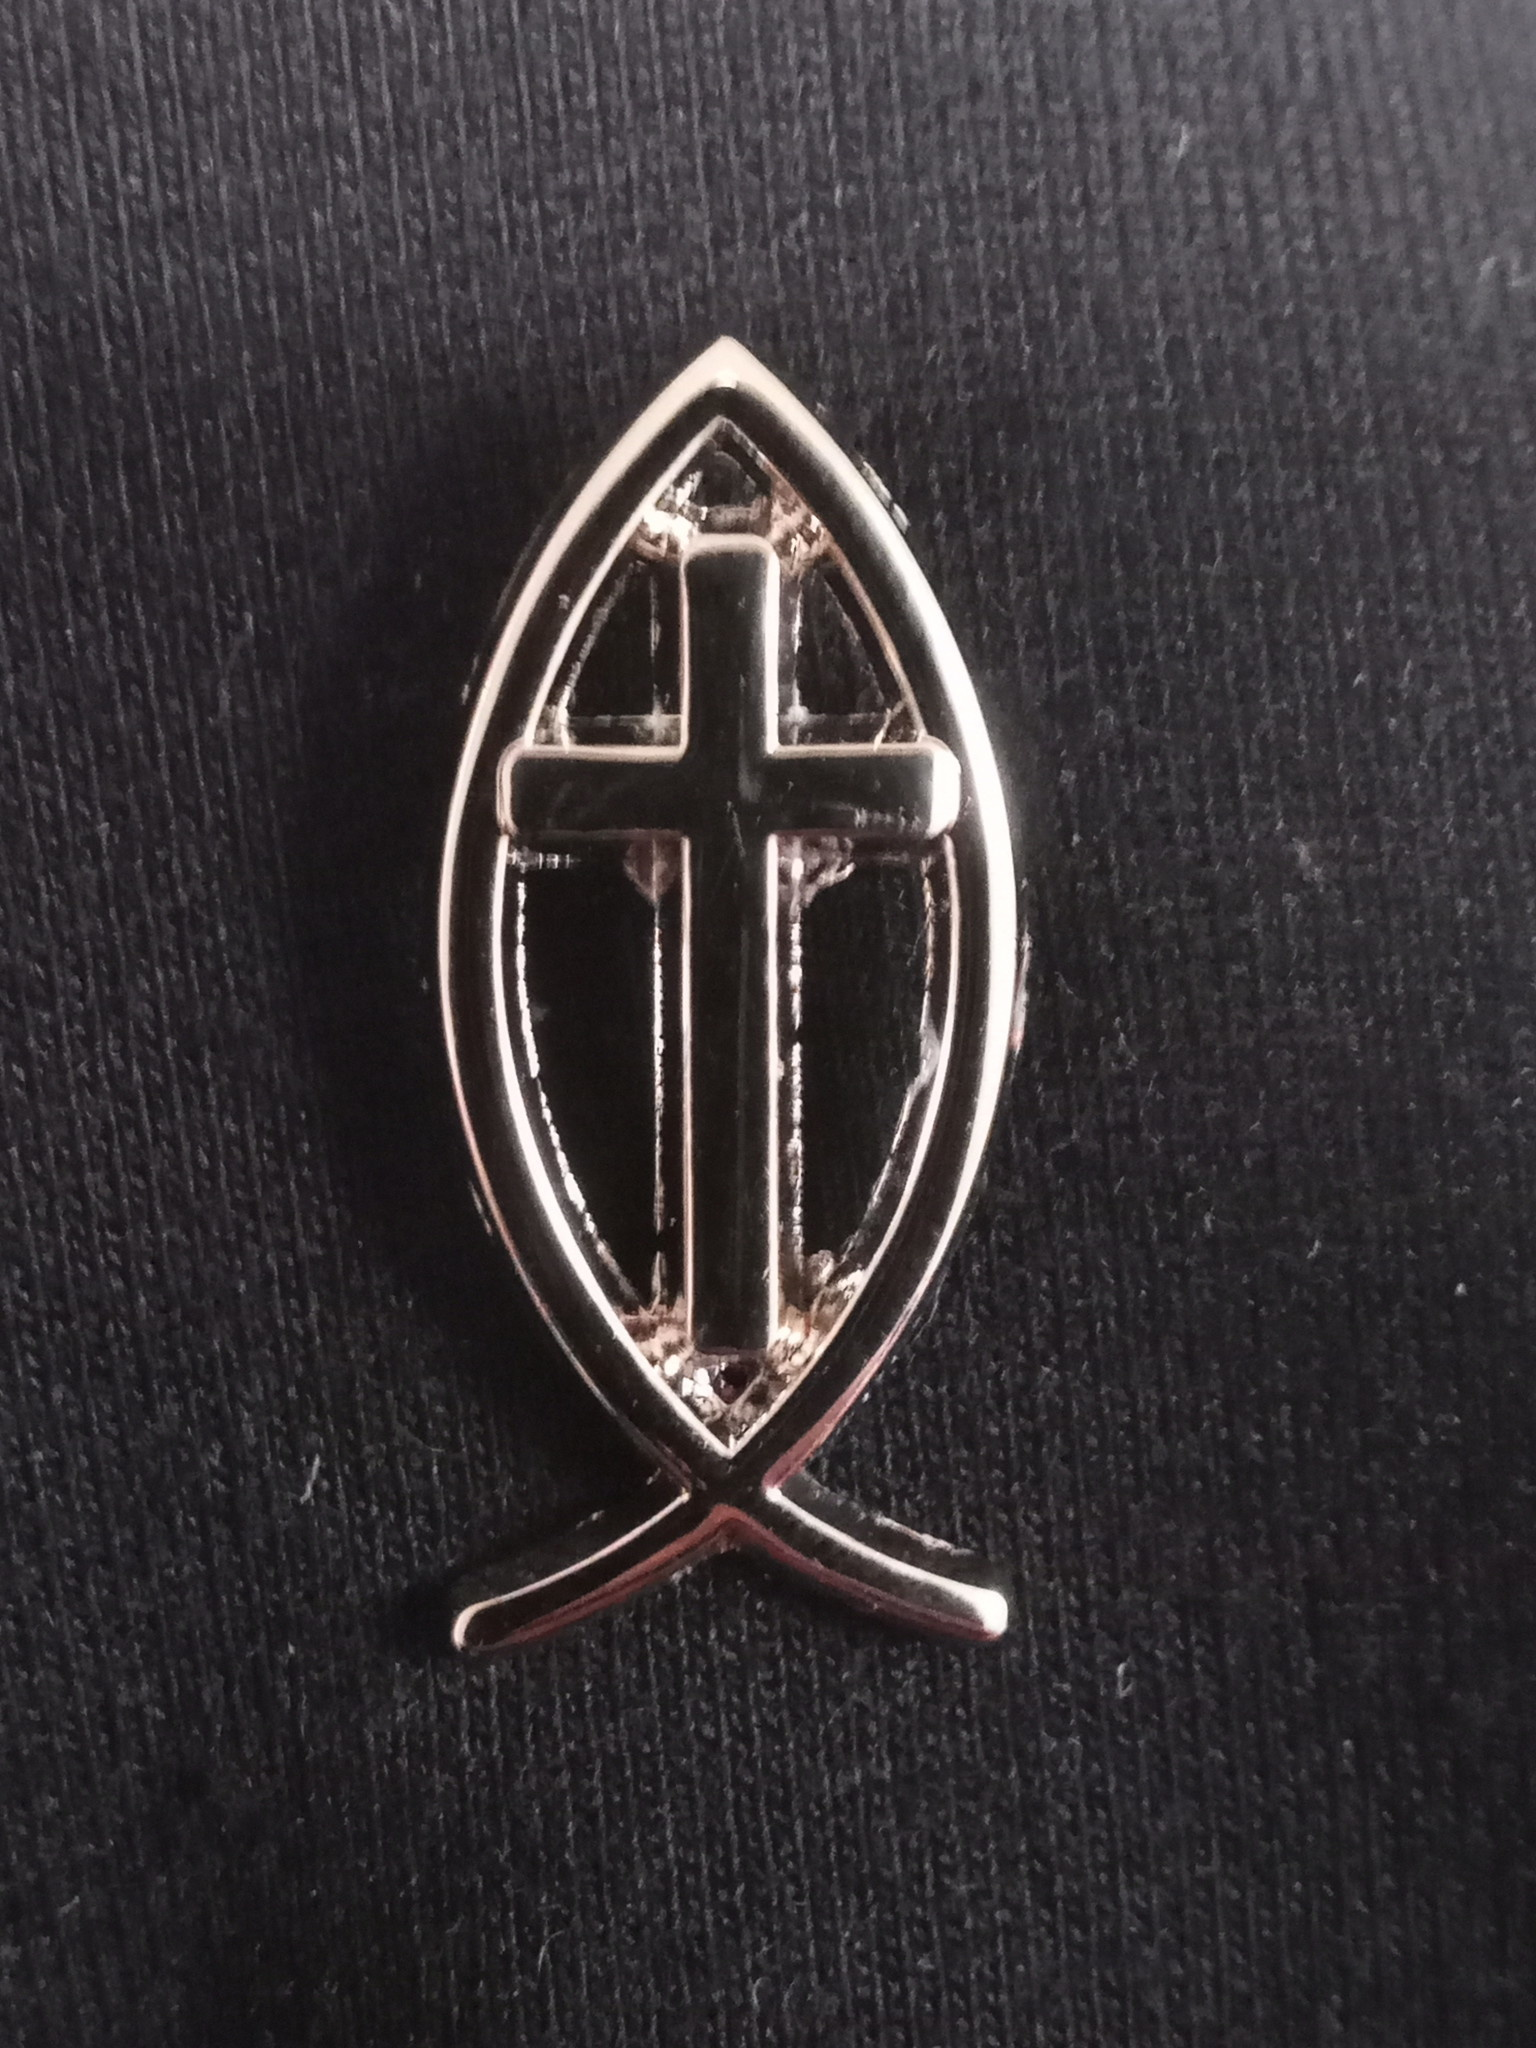 Ichthus Lapel Pin w/cross